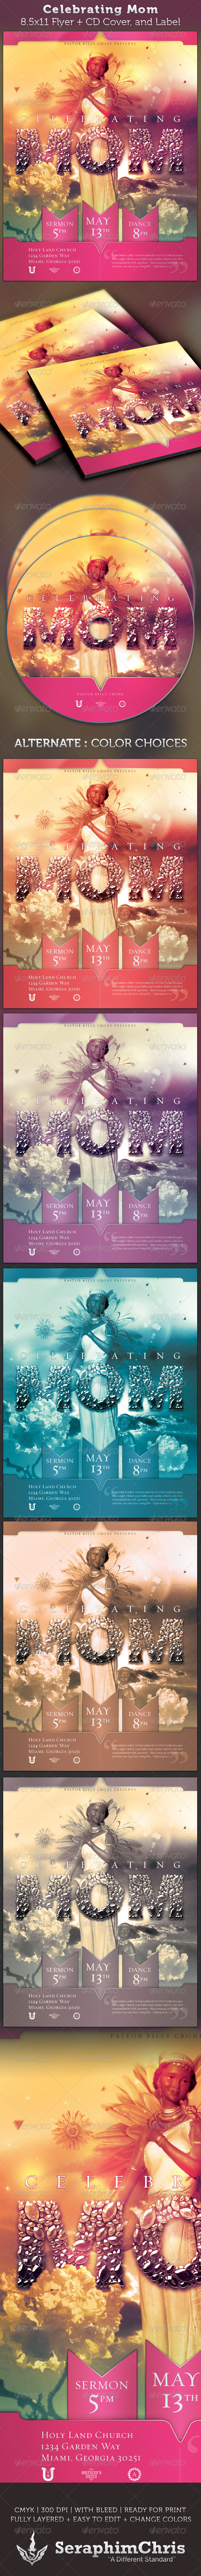 Graphic River Celebrating Mom Full Page Flyer and CD Cover Print Templates -  Flyers  Church 2306043